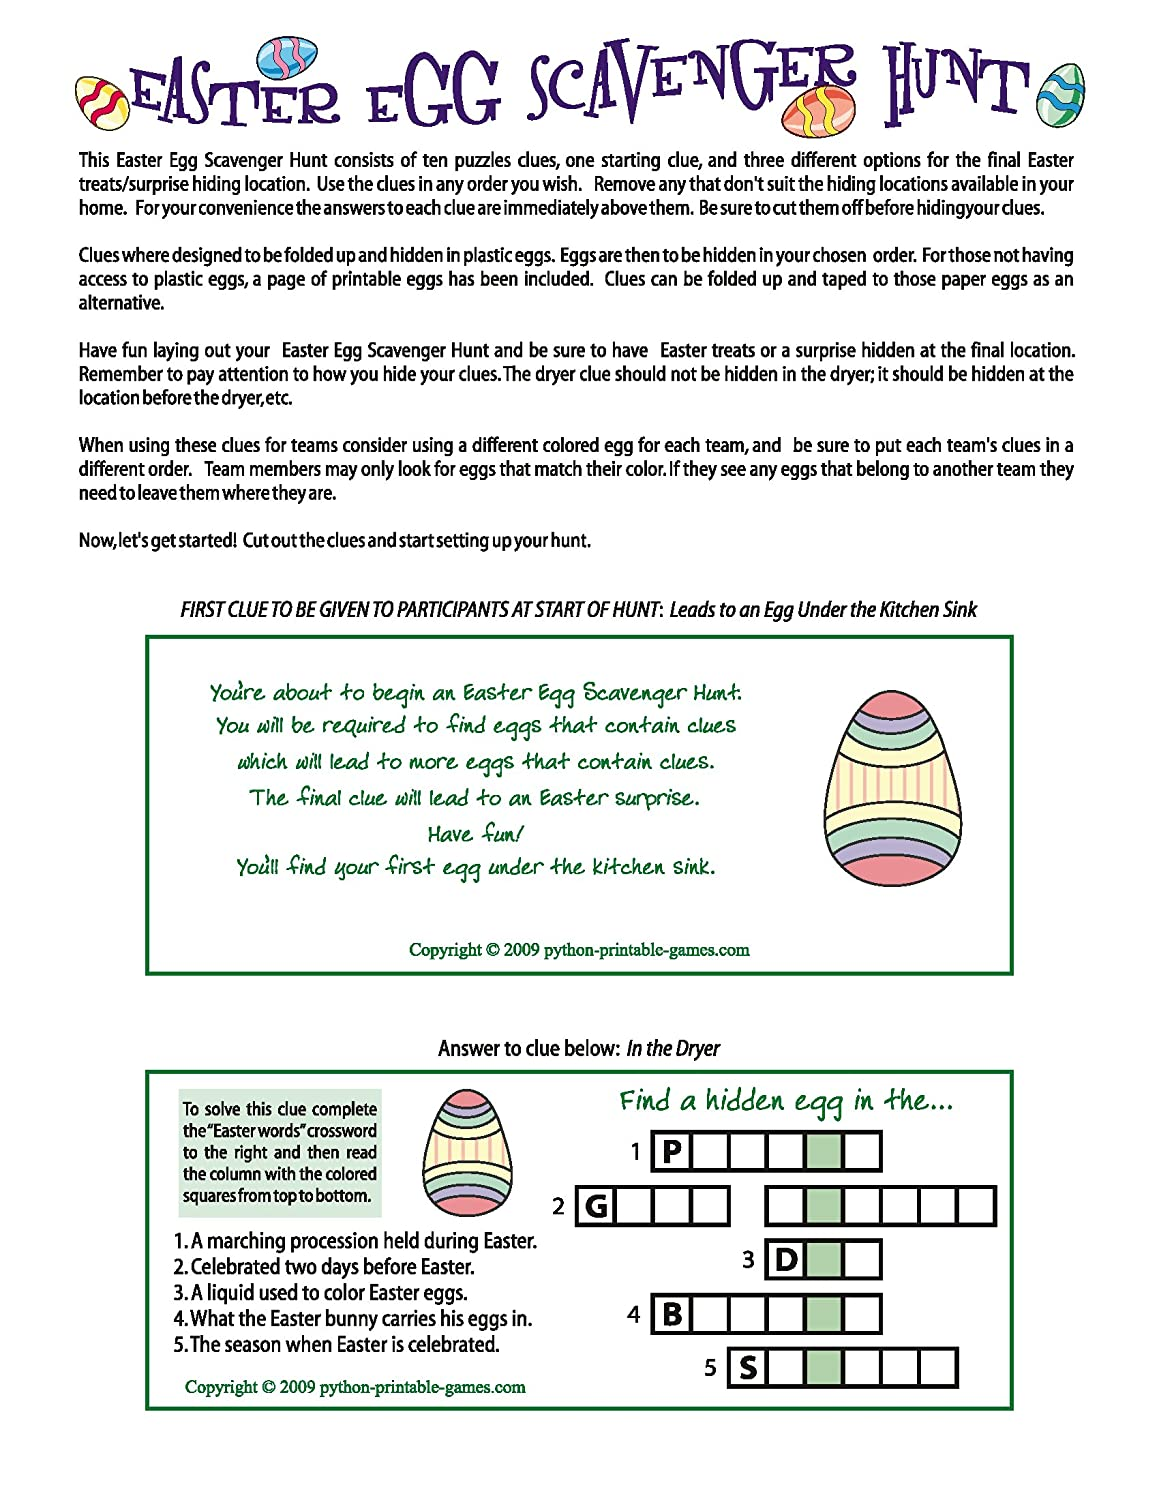 photo relating to Printable Easter Egg Hunt Clues known as Printable Easter Egg Scavenger Hunt Clues Recreation [Obtain]